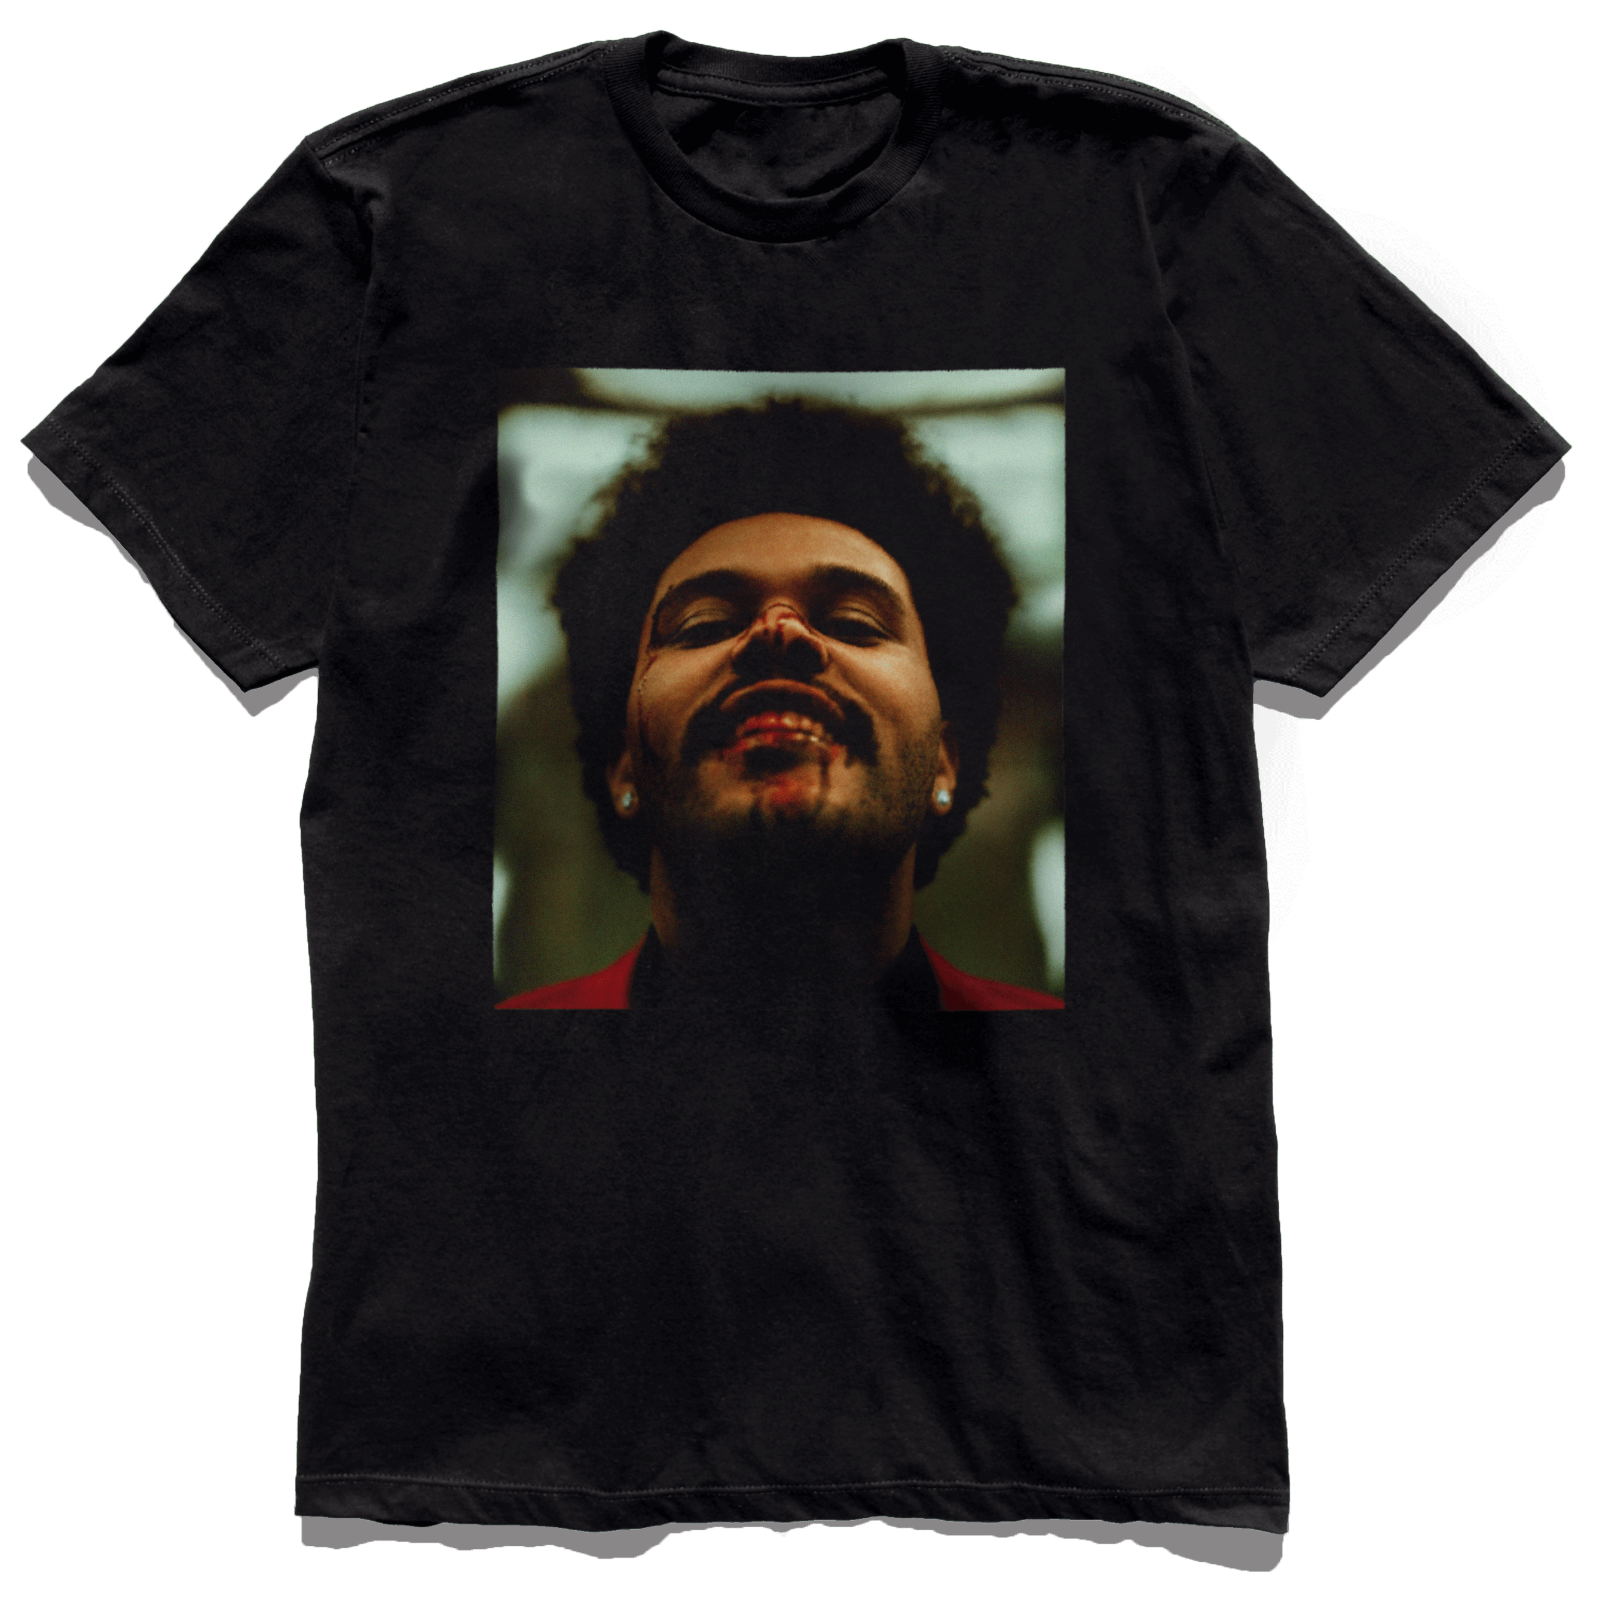 AFTER HOURS PHOTO TEE The Weeknd T-Shirt Unofficial